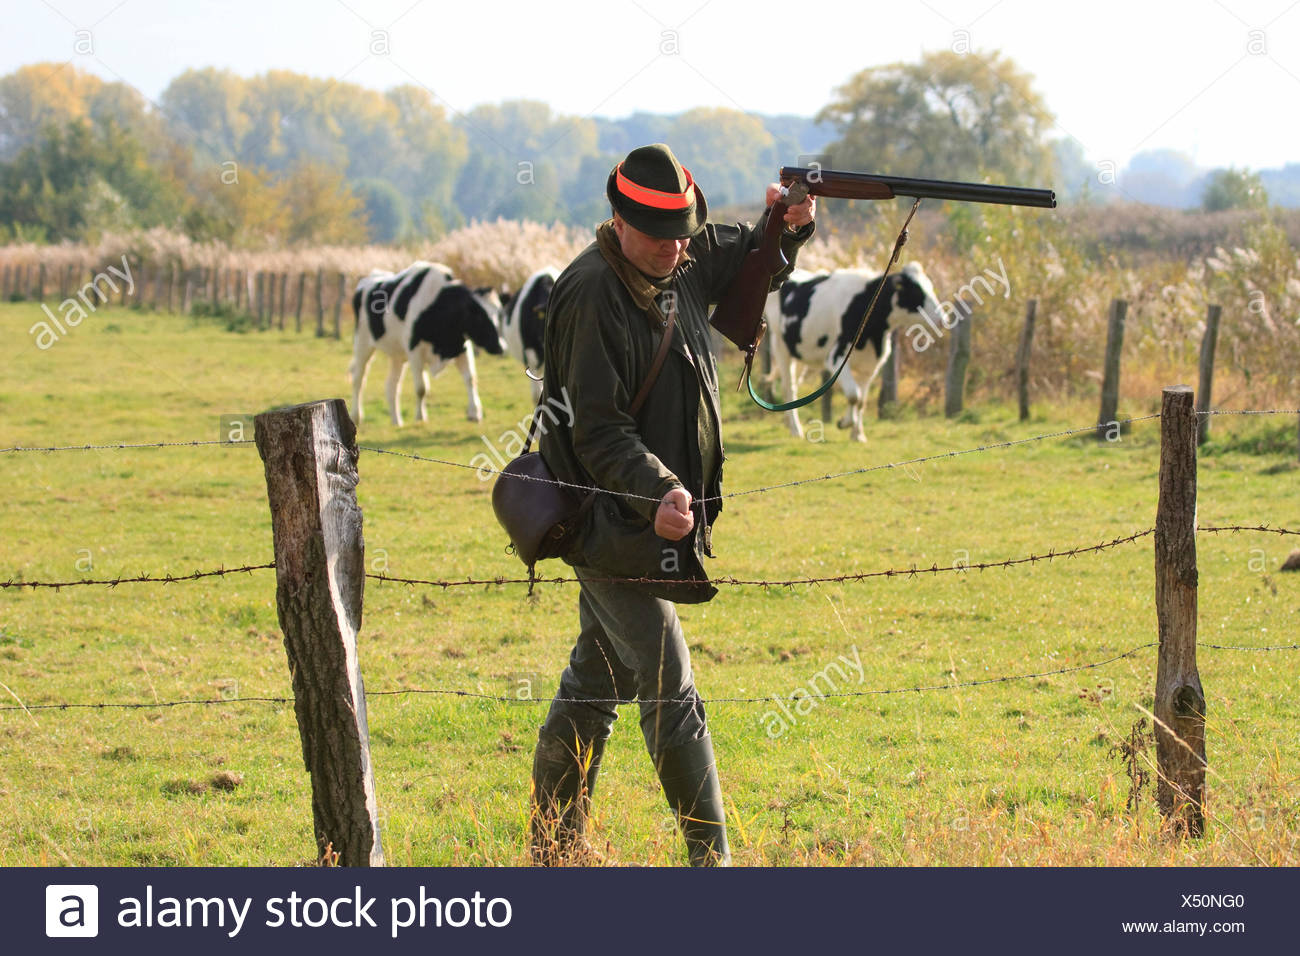 hunter climbing over the barbed wire fence at a pasture, Germany Stock Photo